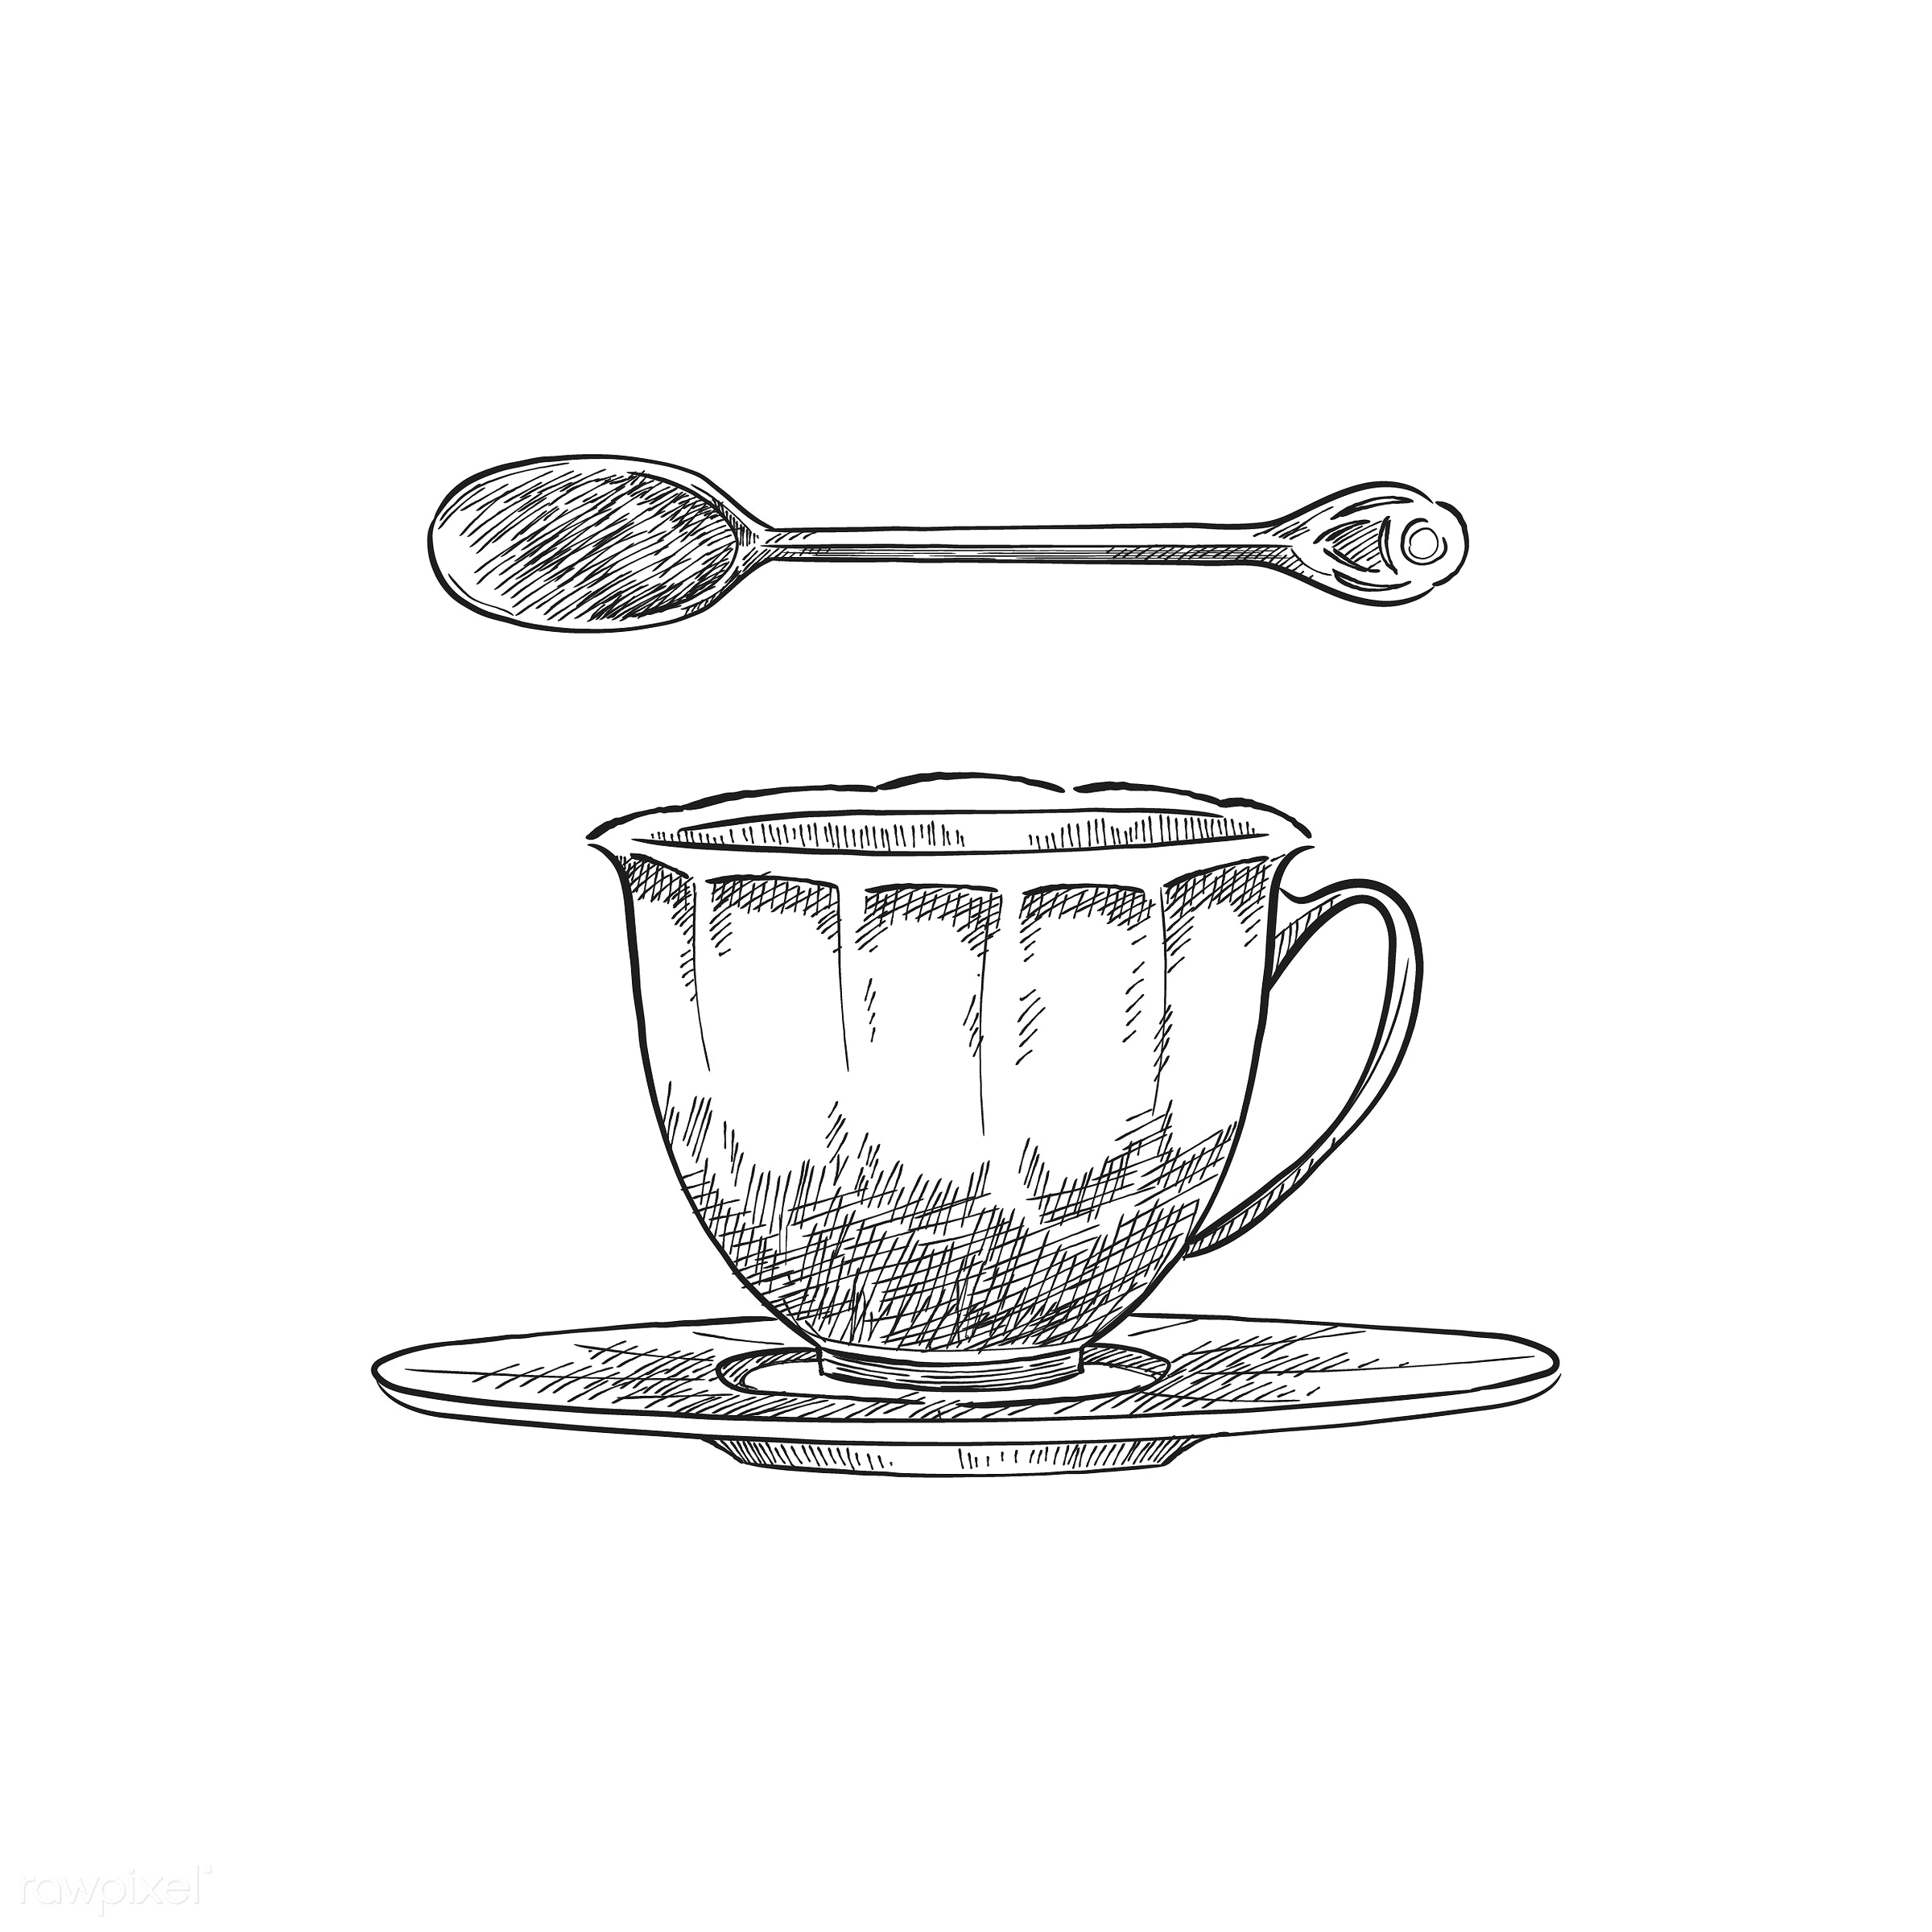 Vintage illustration of a teacup and teaspoon - cup, restaurant, antique, aroma, beverage, black, cafe, ceramic cup, design...